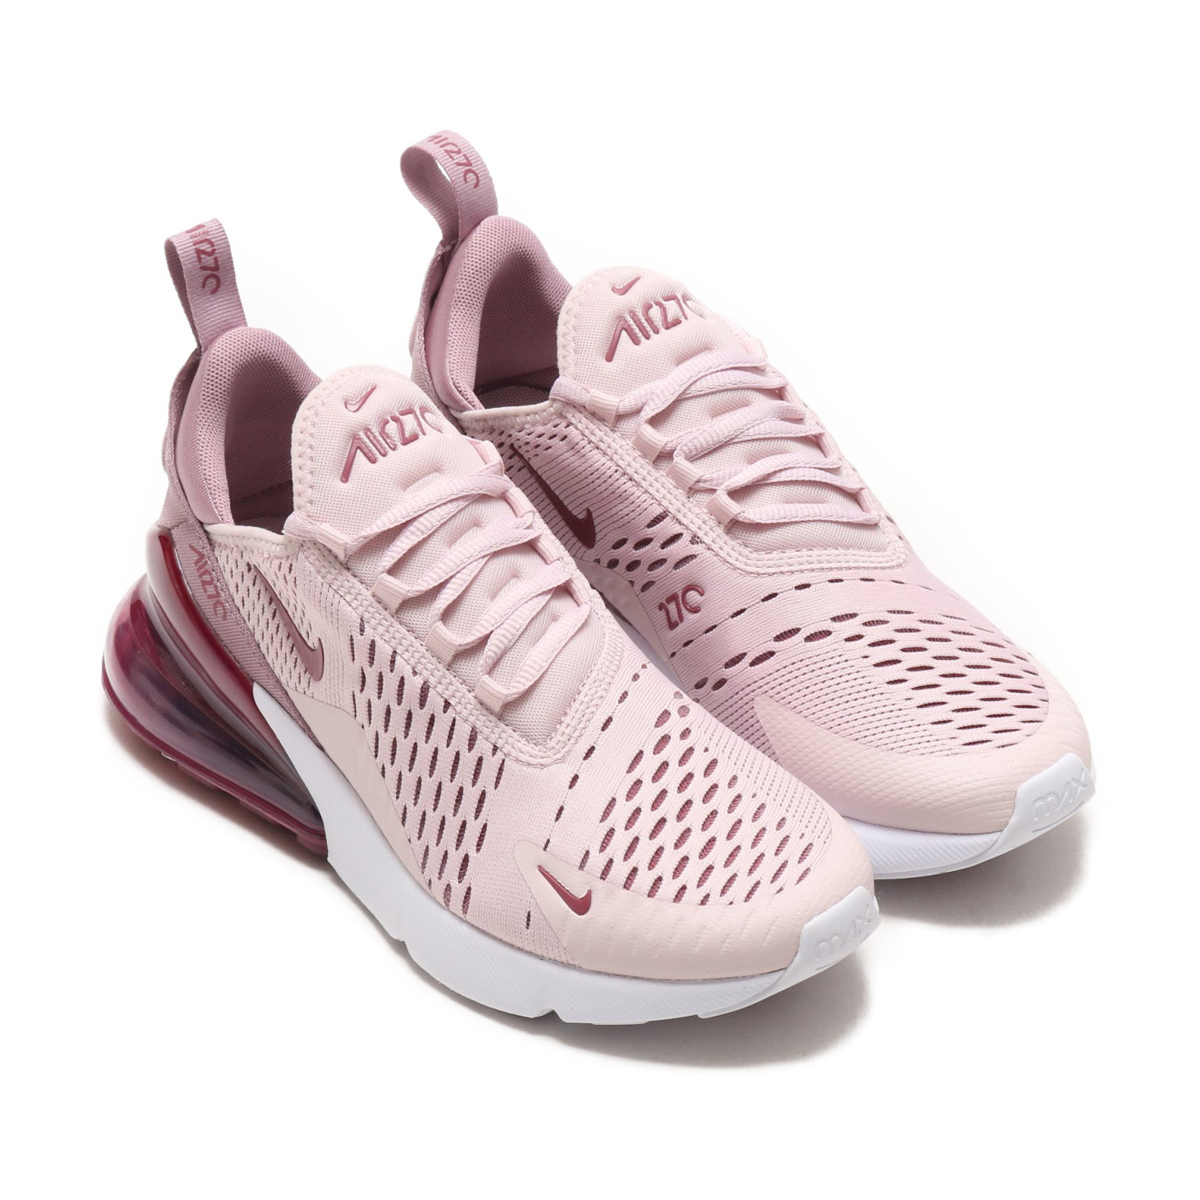 NIKE W AIR MAX 270 (Nike women Air Max 270) (BARELY ROSE/VINTAGE WINE-ELEMENTAL ROSE) 18SU-S